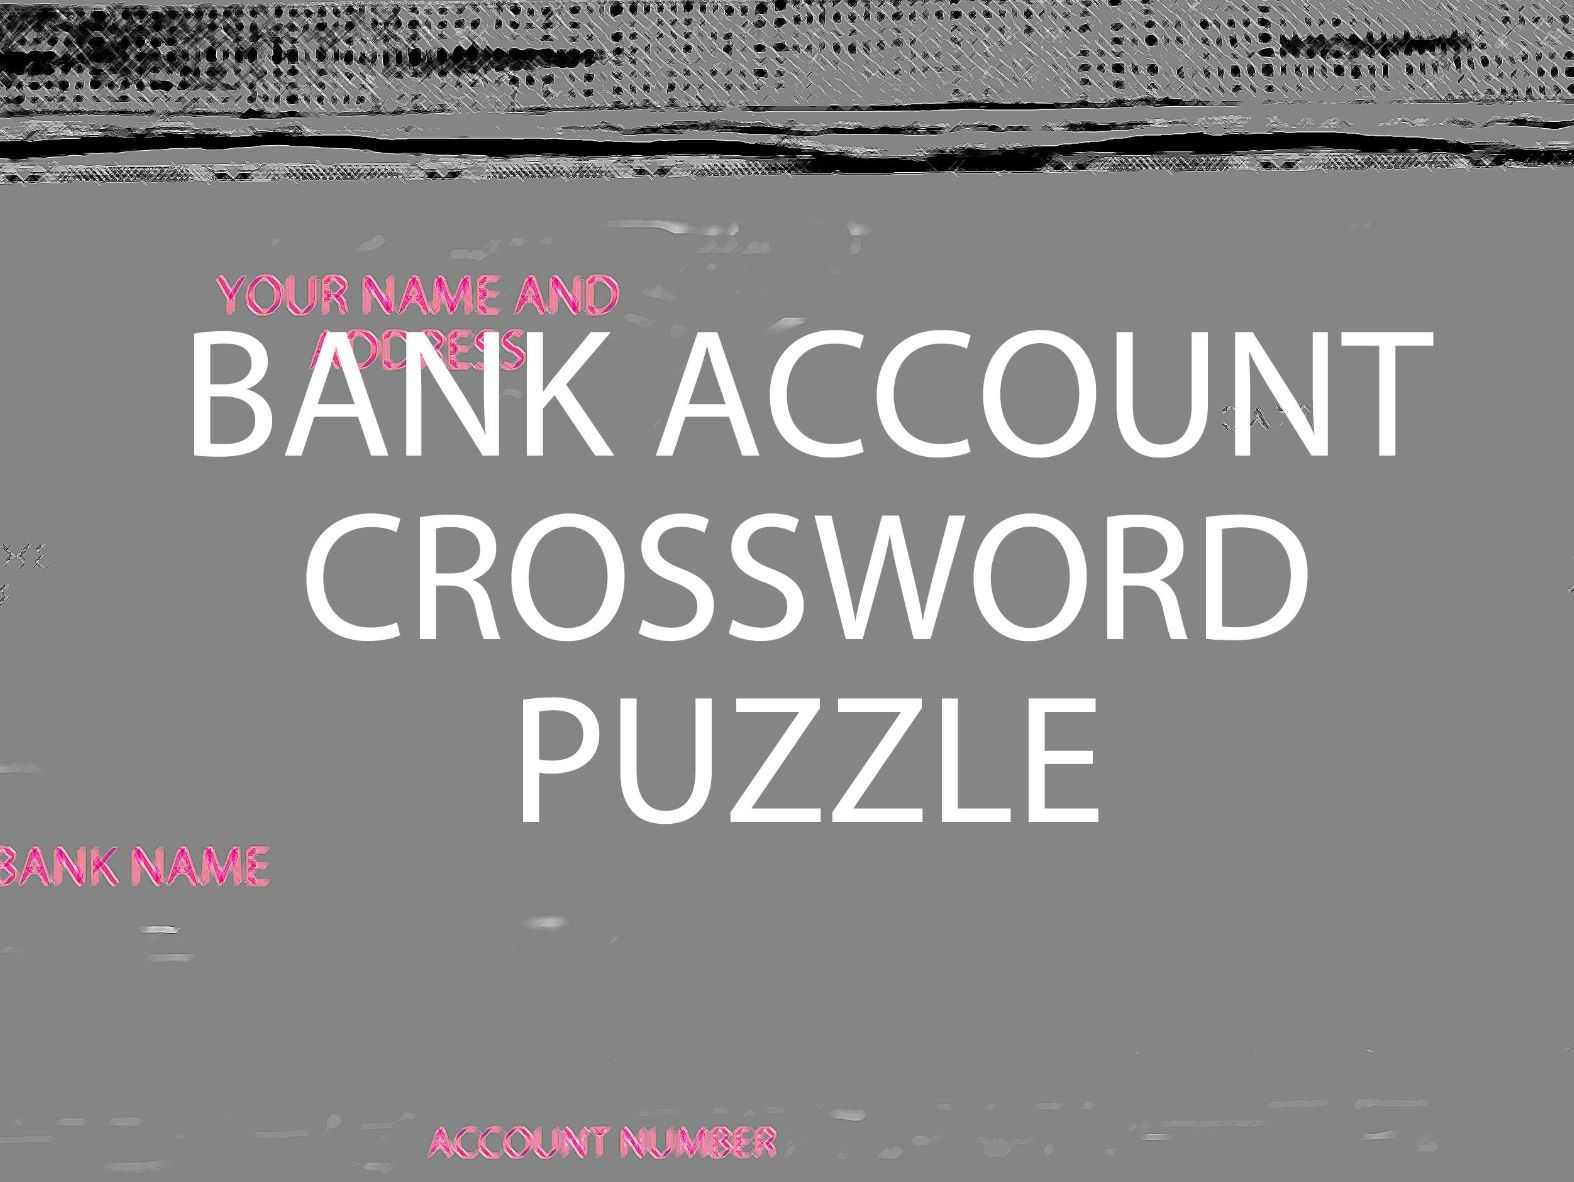 Bank Account, Earning Money and Starting Work crossword puzzles bundle